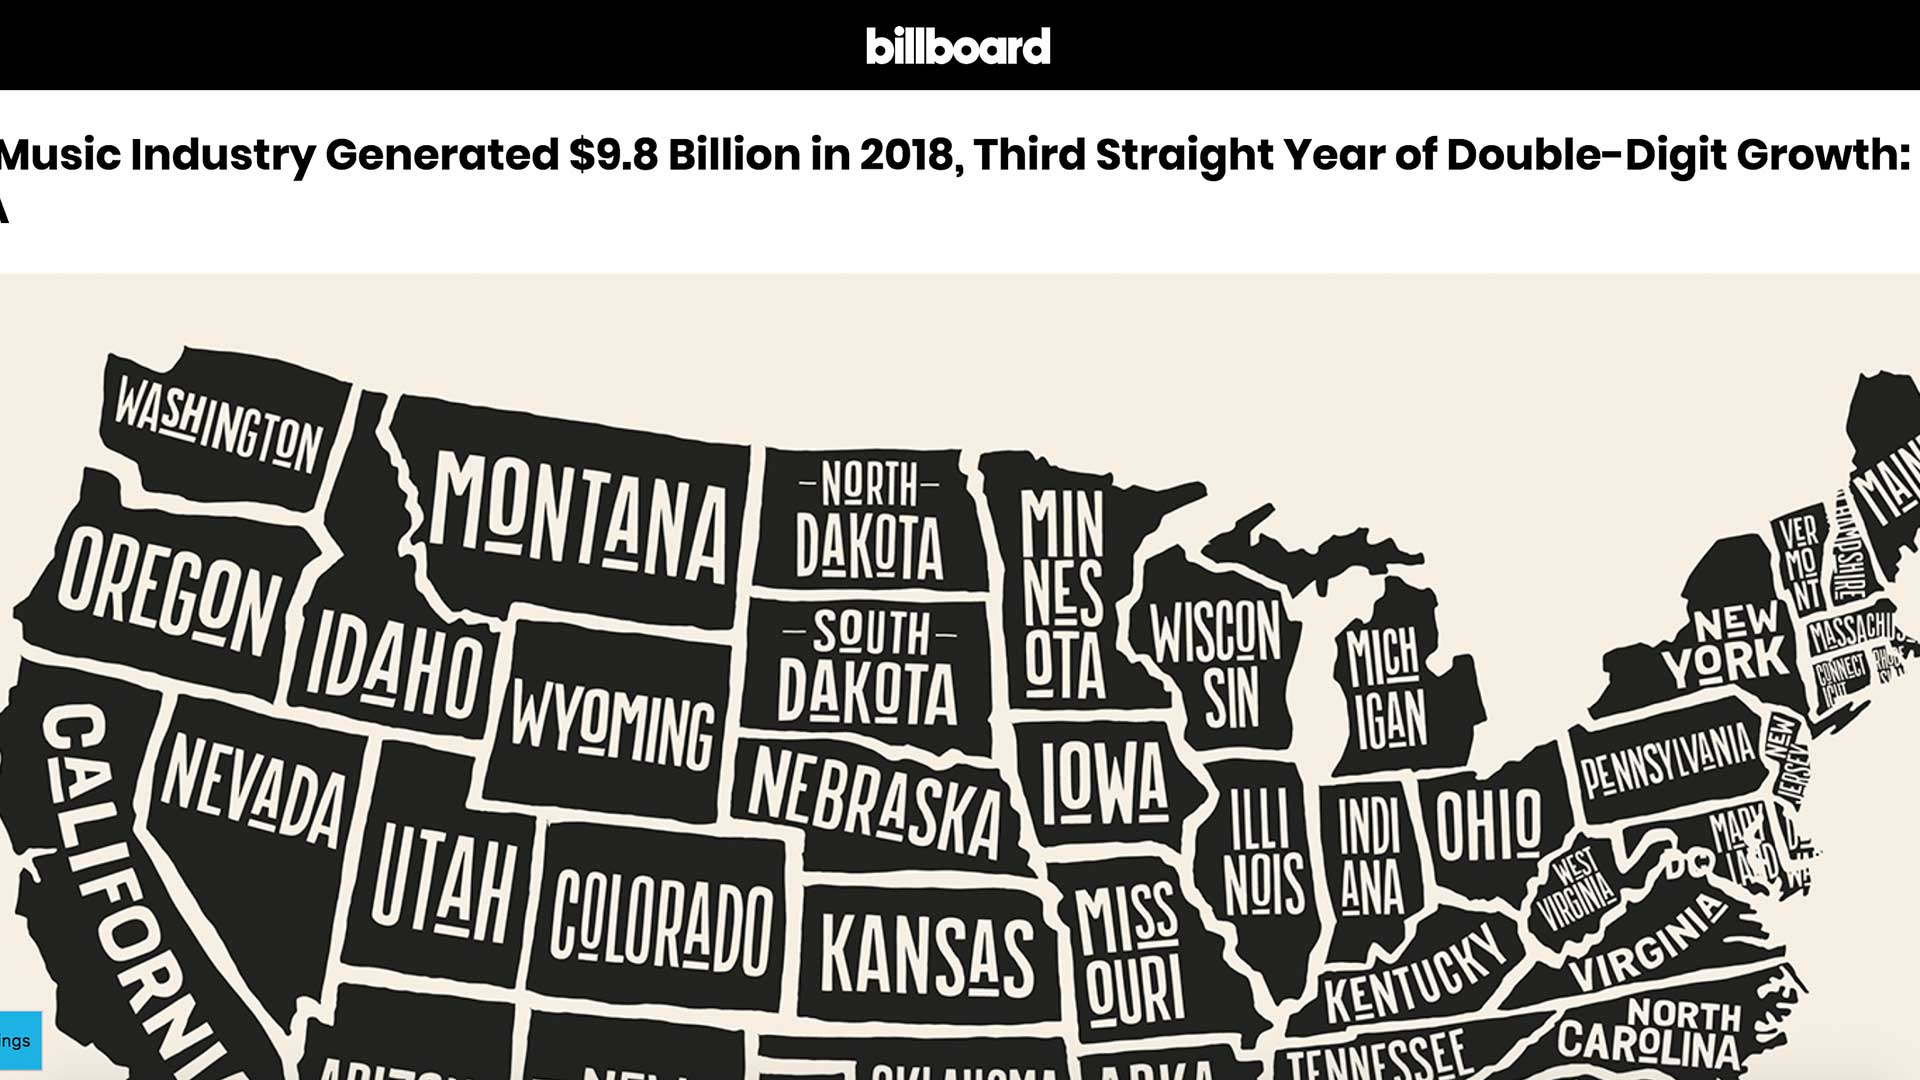 Fairness Rocks News U.S. Music Industry Generated $9.8 Billion in 2018, Third Straight Year of Double-Digit Growth: RIAA